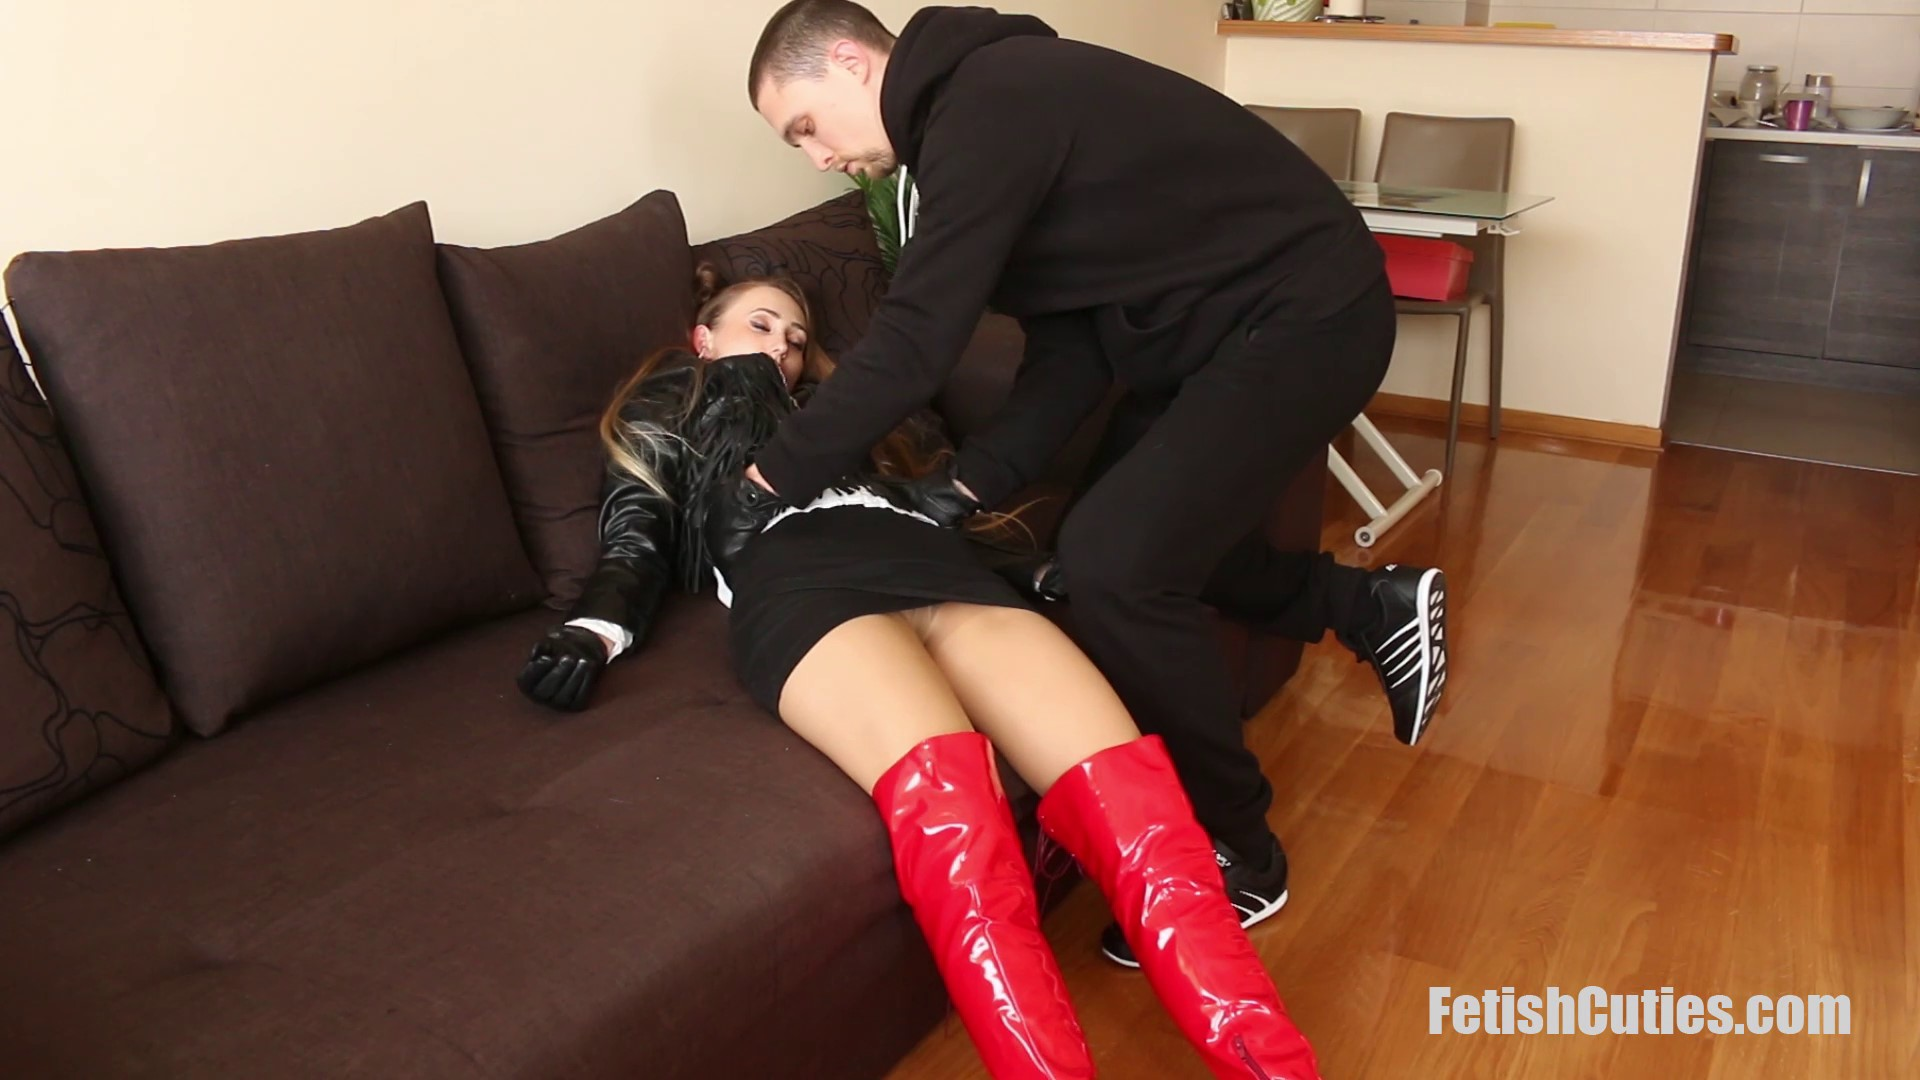 FETISH CUTIES Unsuspectedly Caught, Neck Chopped And Used For Pleasure (17)